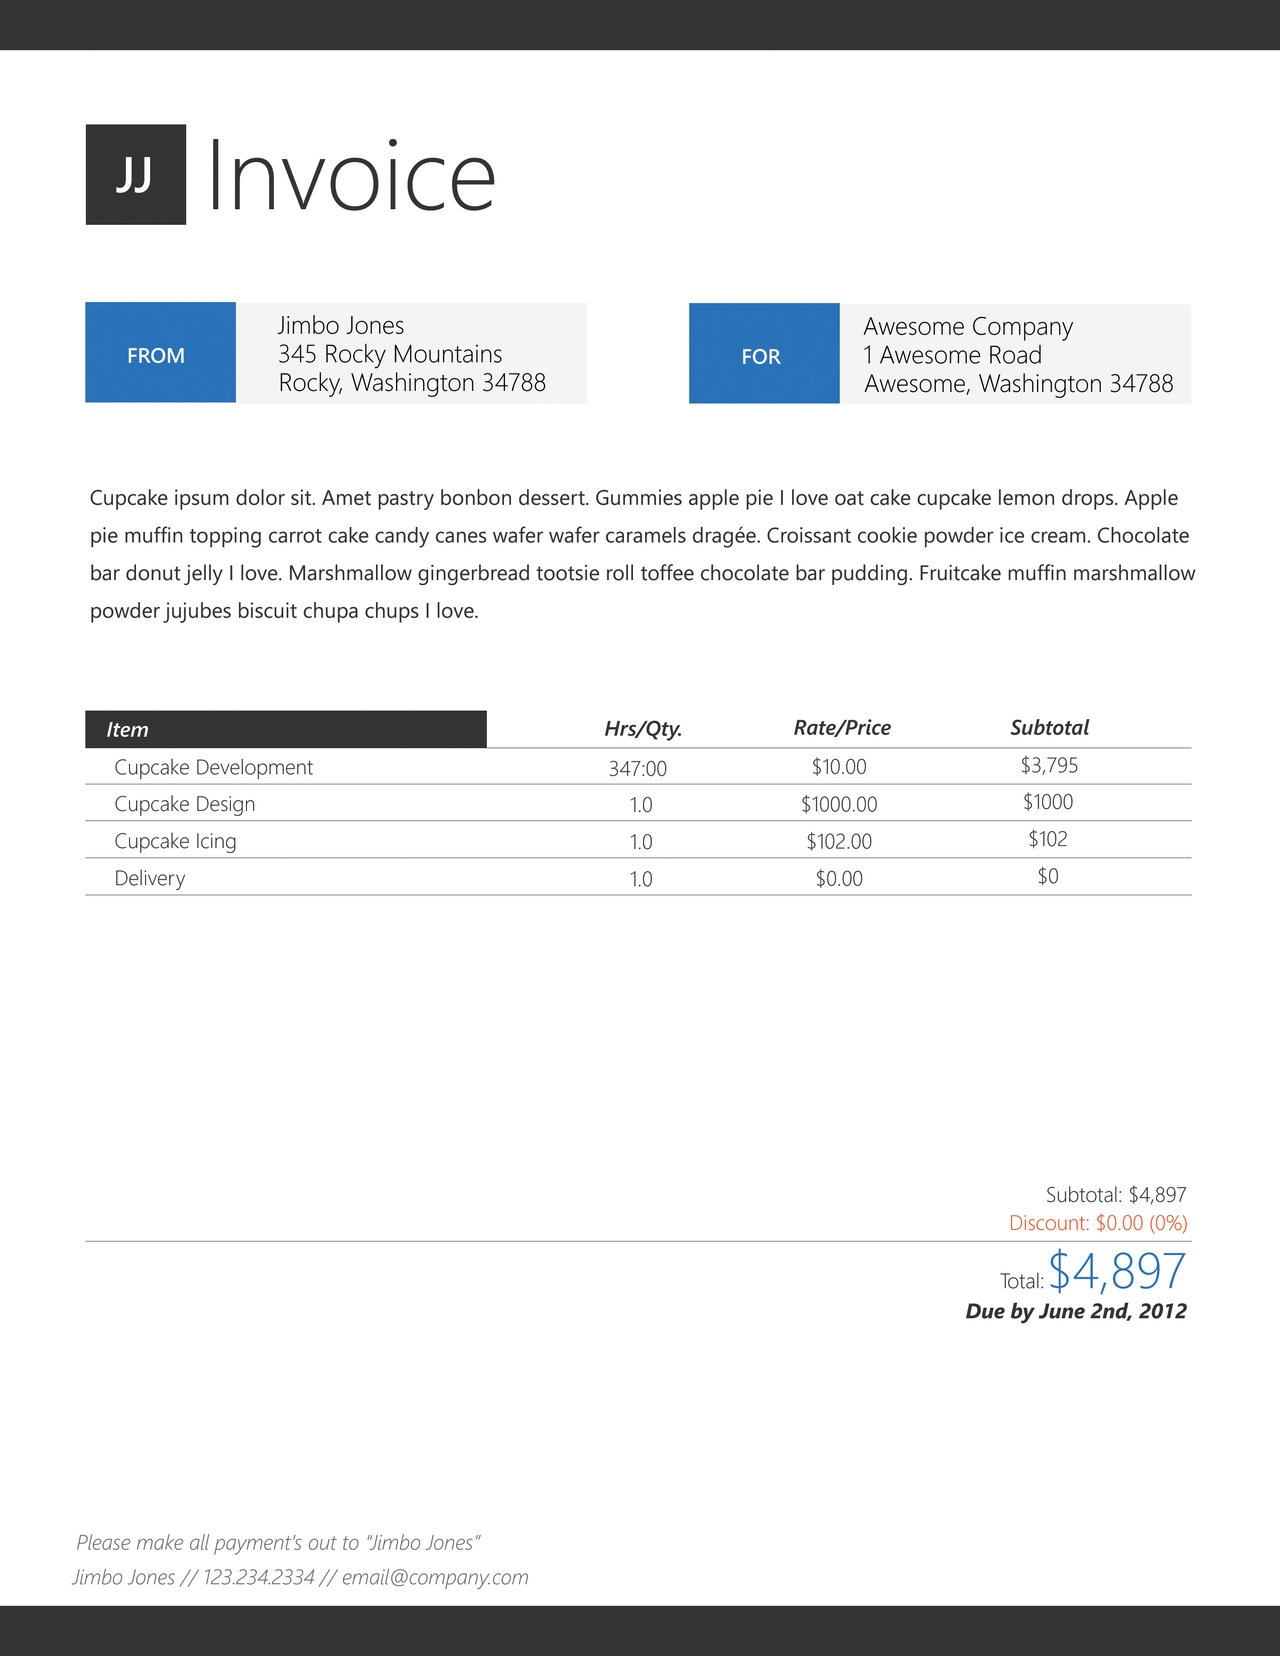 cool invoice designs invoice design best practice and code for on pinterest 1280 X 1656